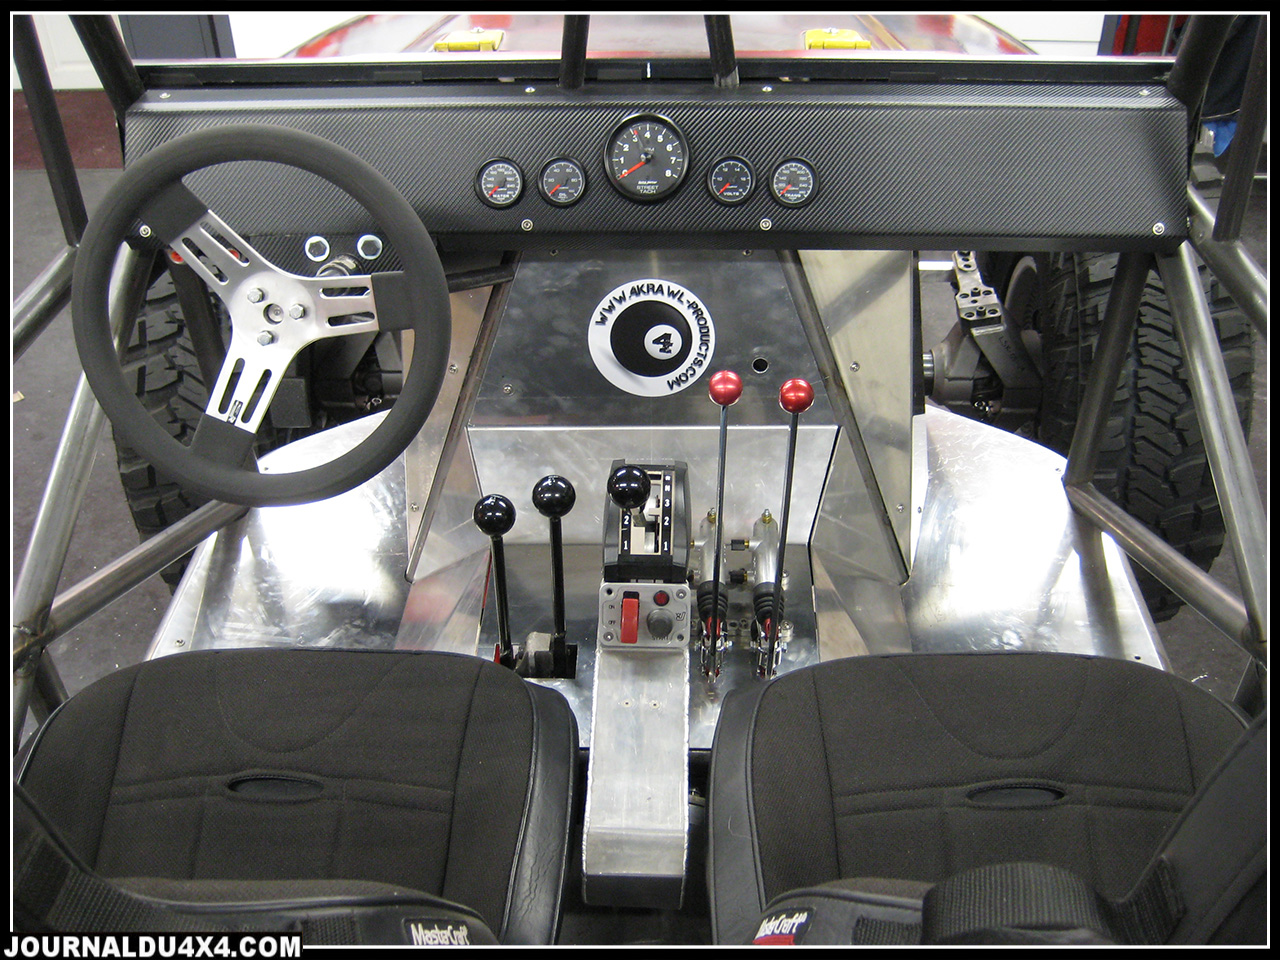 Levers from Left to Right : Atlas Shifters, Transmission Shifter, Front and Rear Left/Right Cutting Brakes